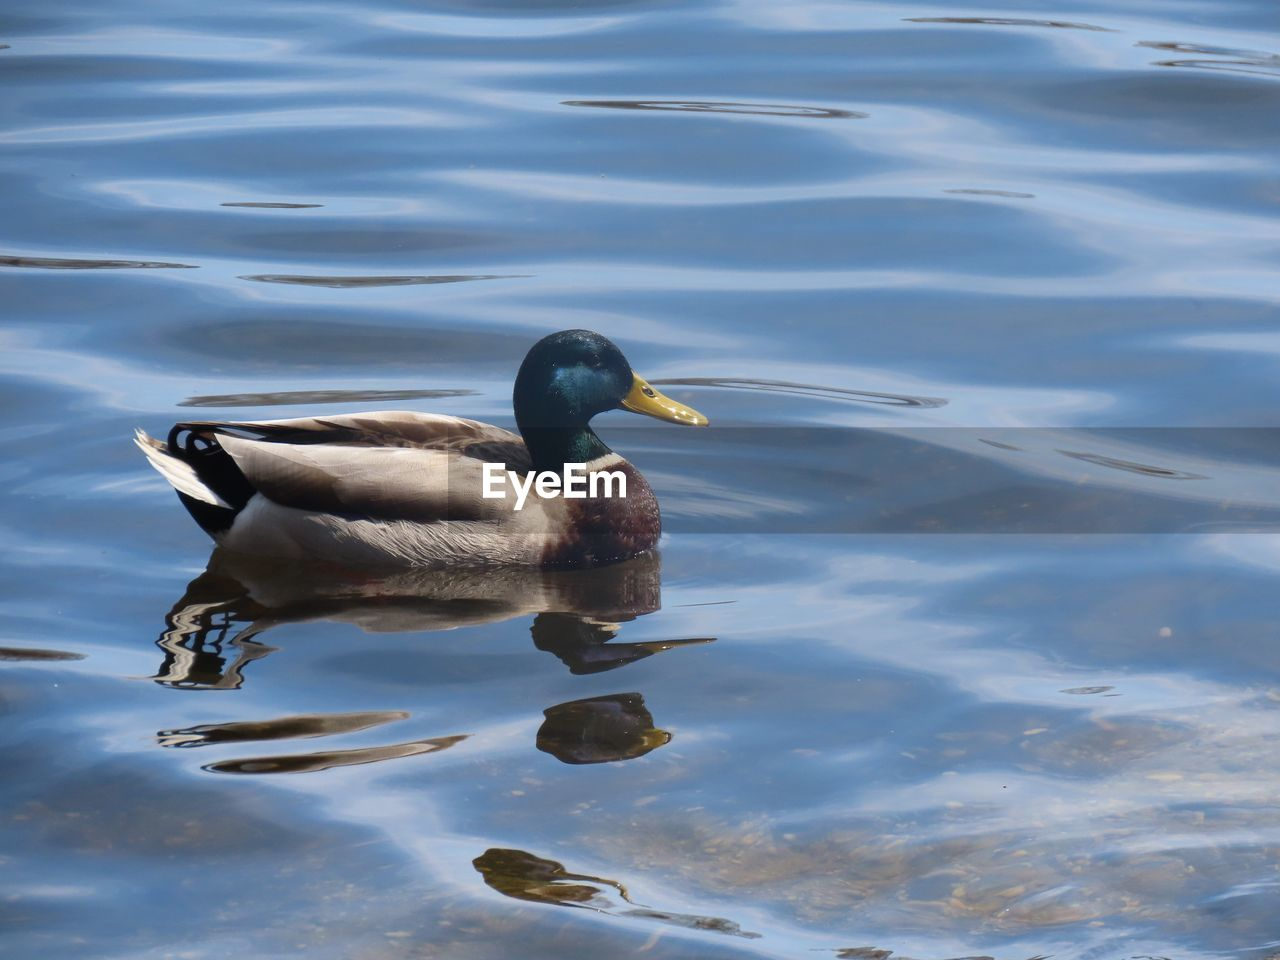 animals in the wild, water, animal wildlife, bird, animal, animal themes, lake, swimming, vertebrate, one animal, waterfront, duck, day, no people, nature, poultry, reflection, male animal, water bird, outdoors